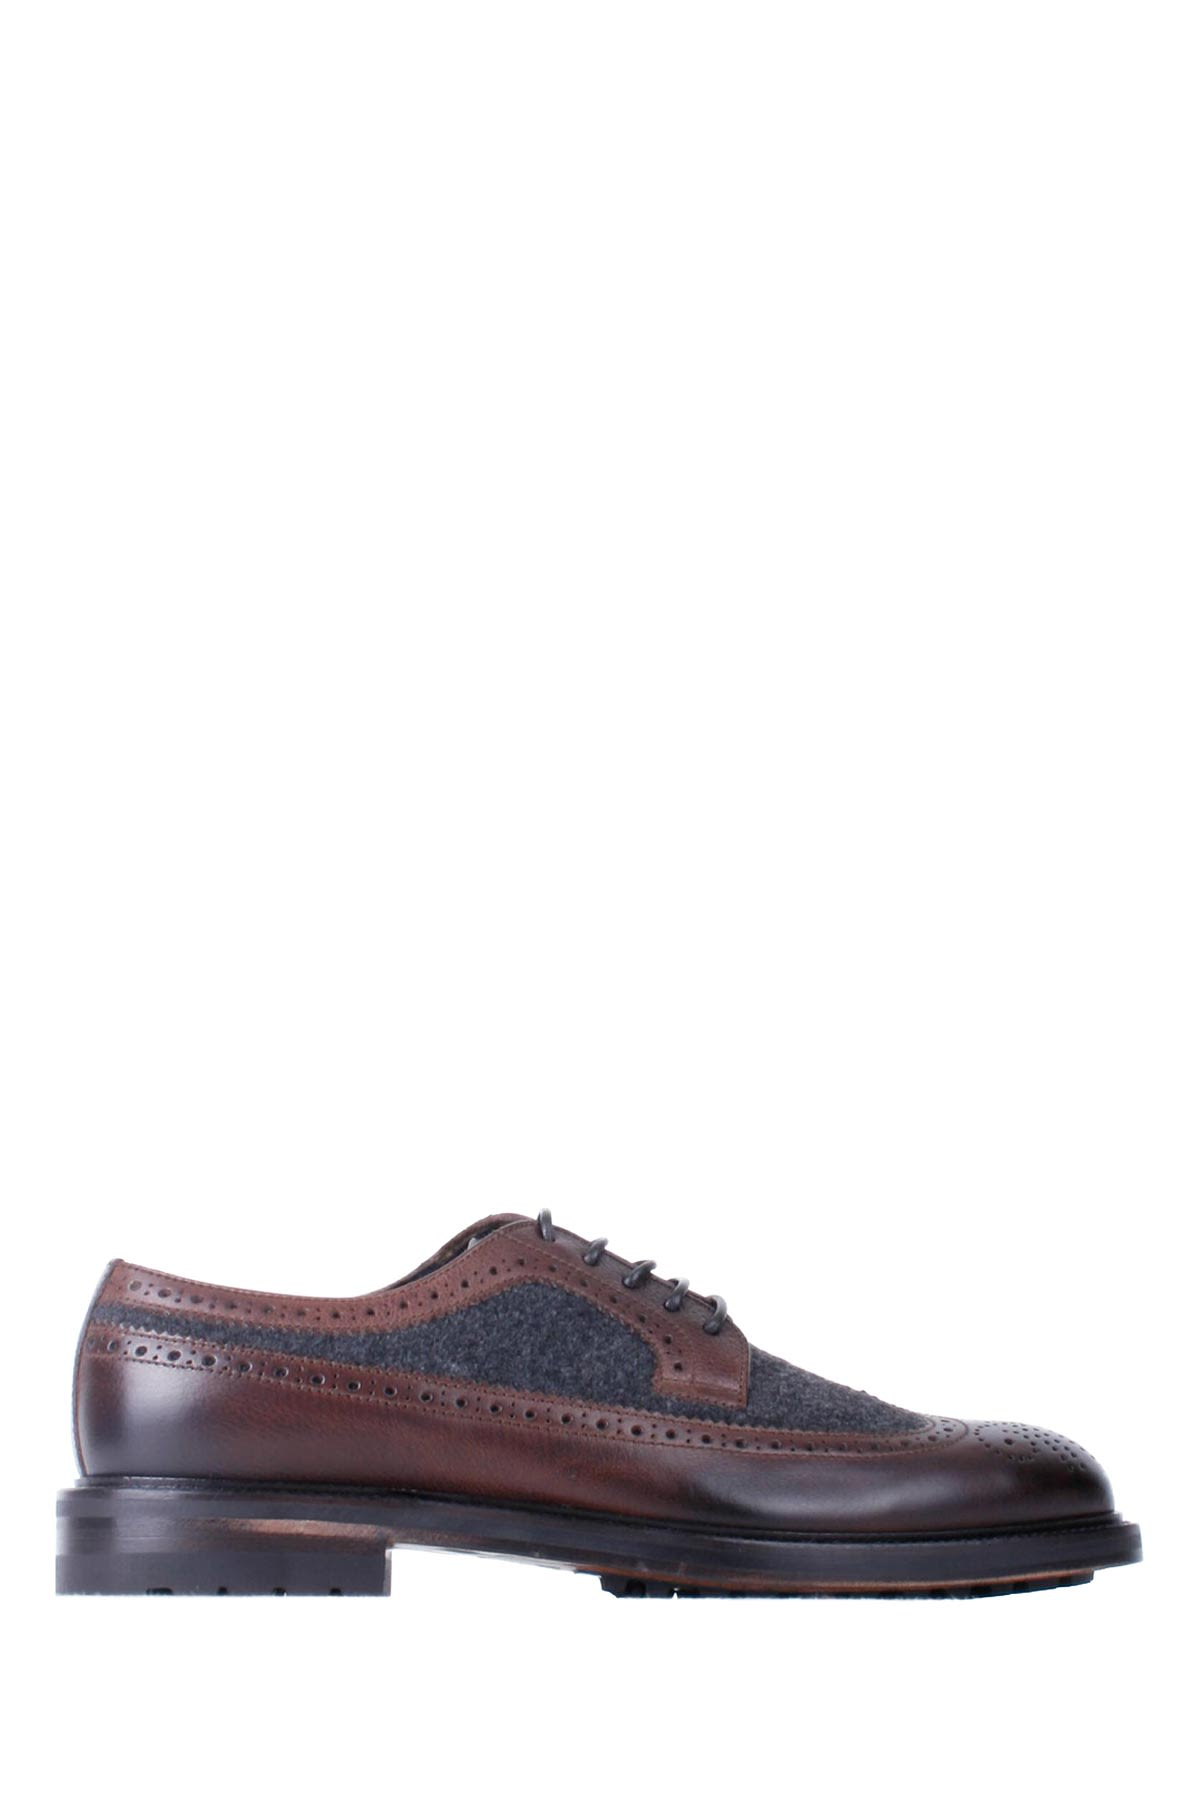 Doucals Brown-dark Grey Leather Man Laced Derby Shoes